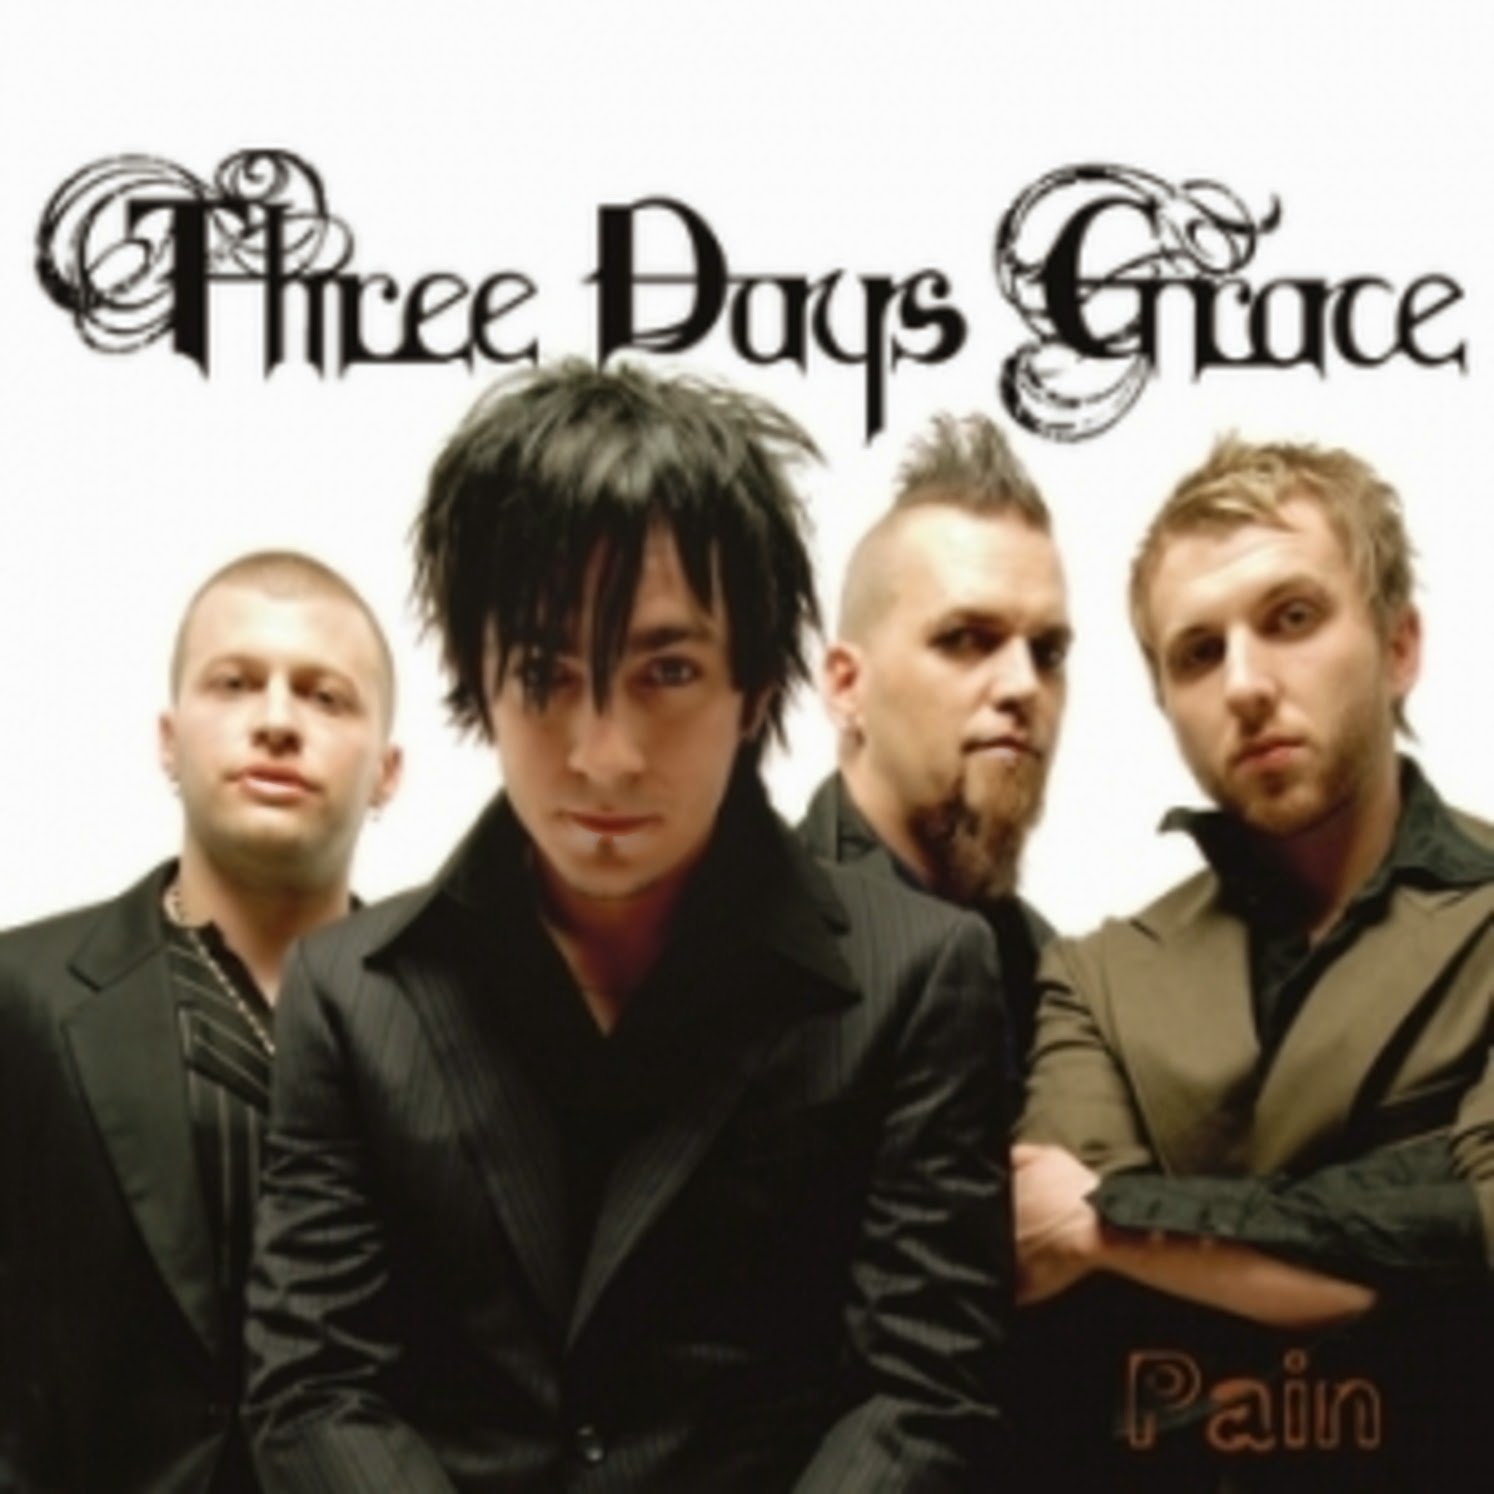 1494x1494px Three Days Grace 14597 KB 348831 1494x1494